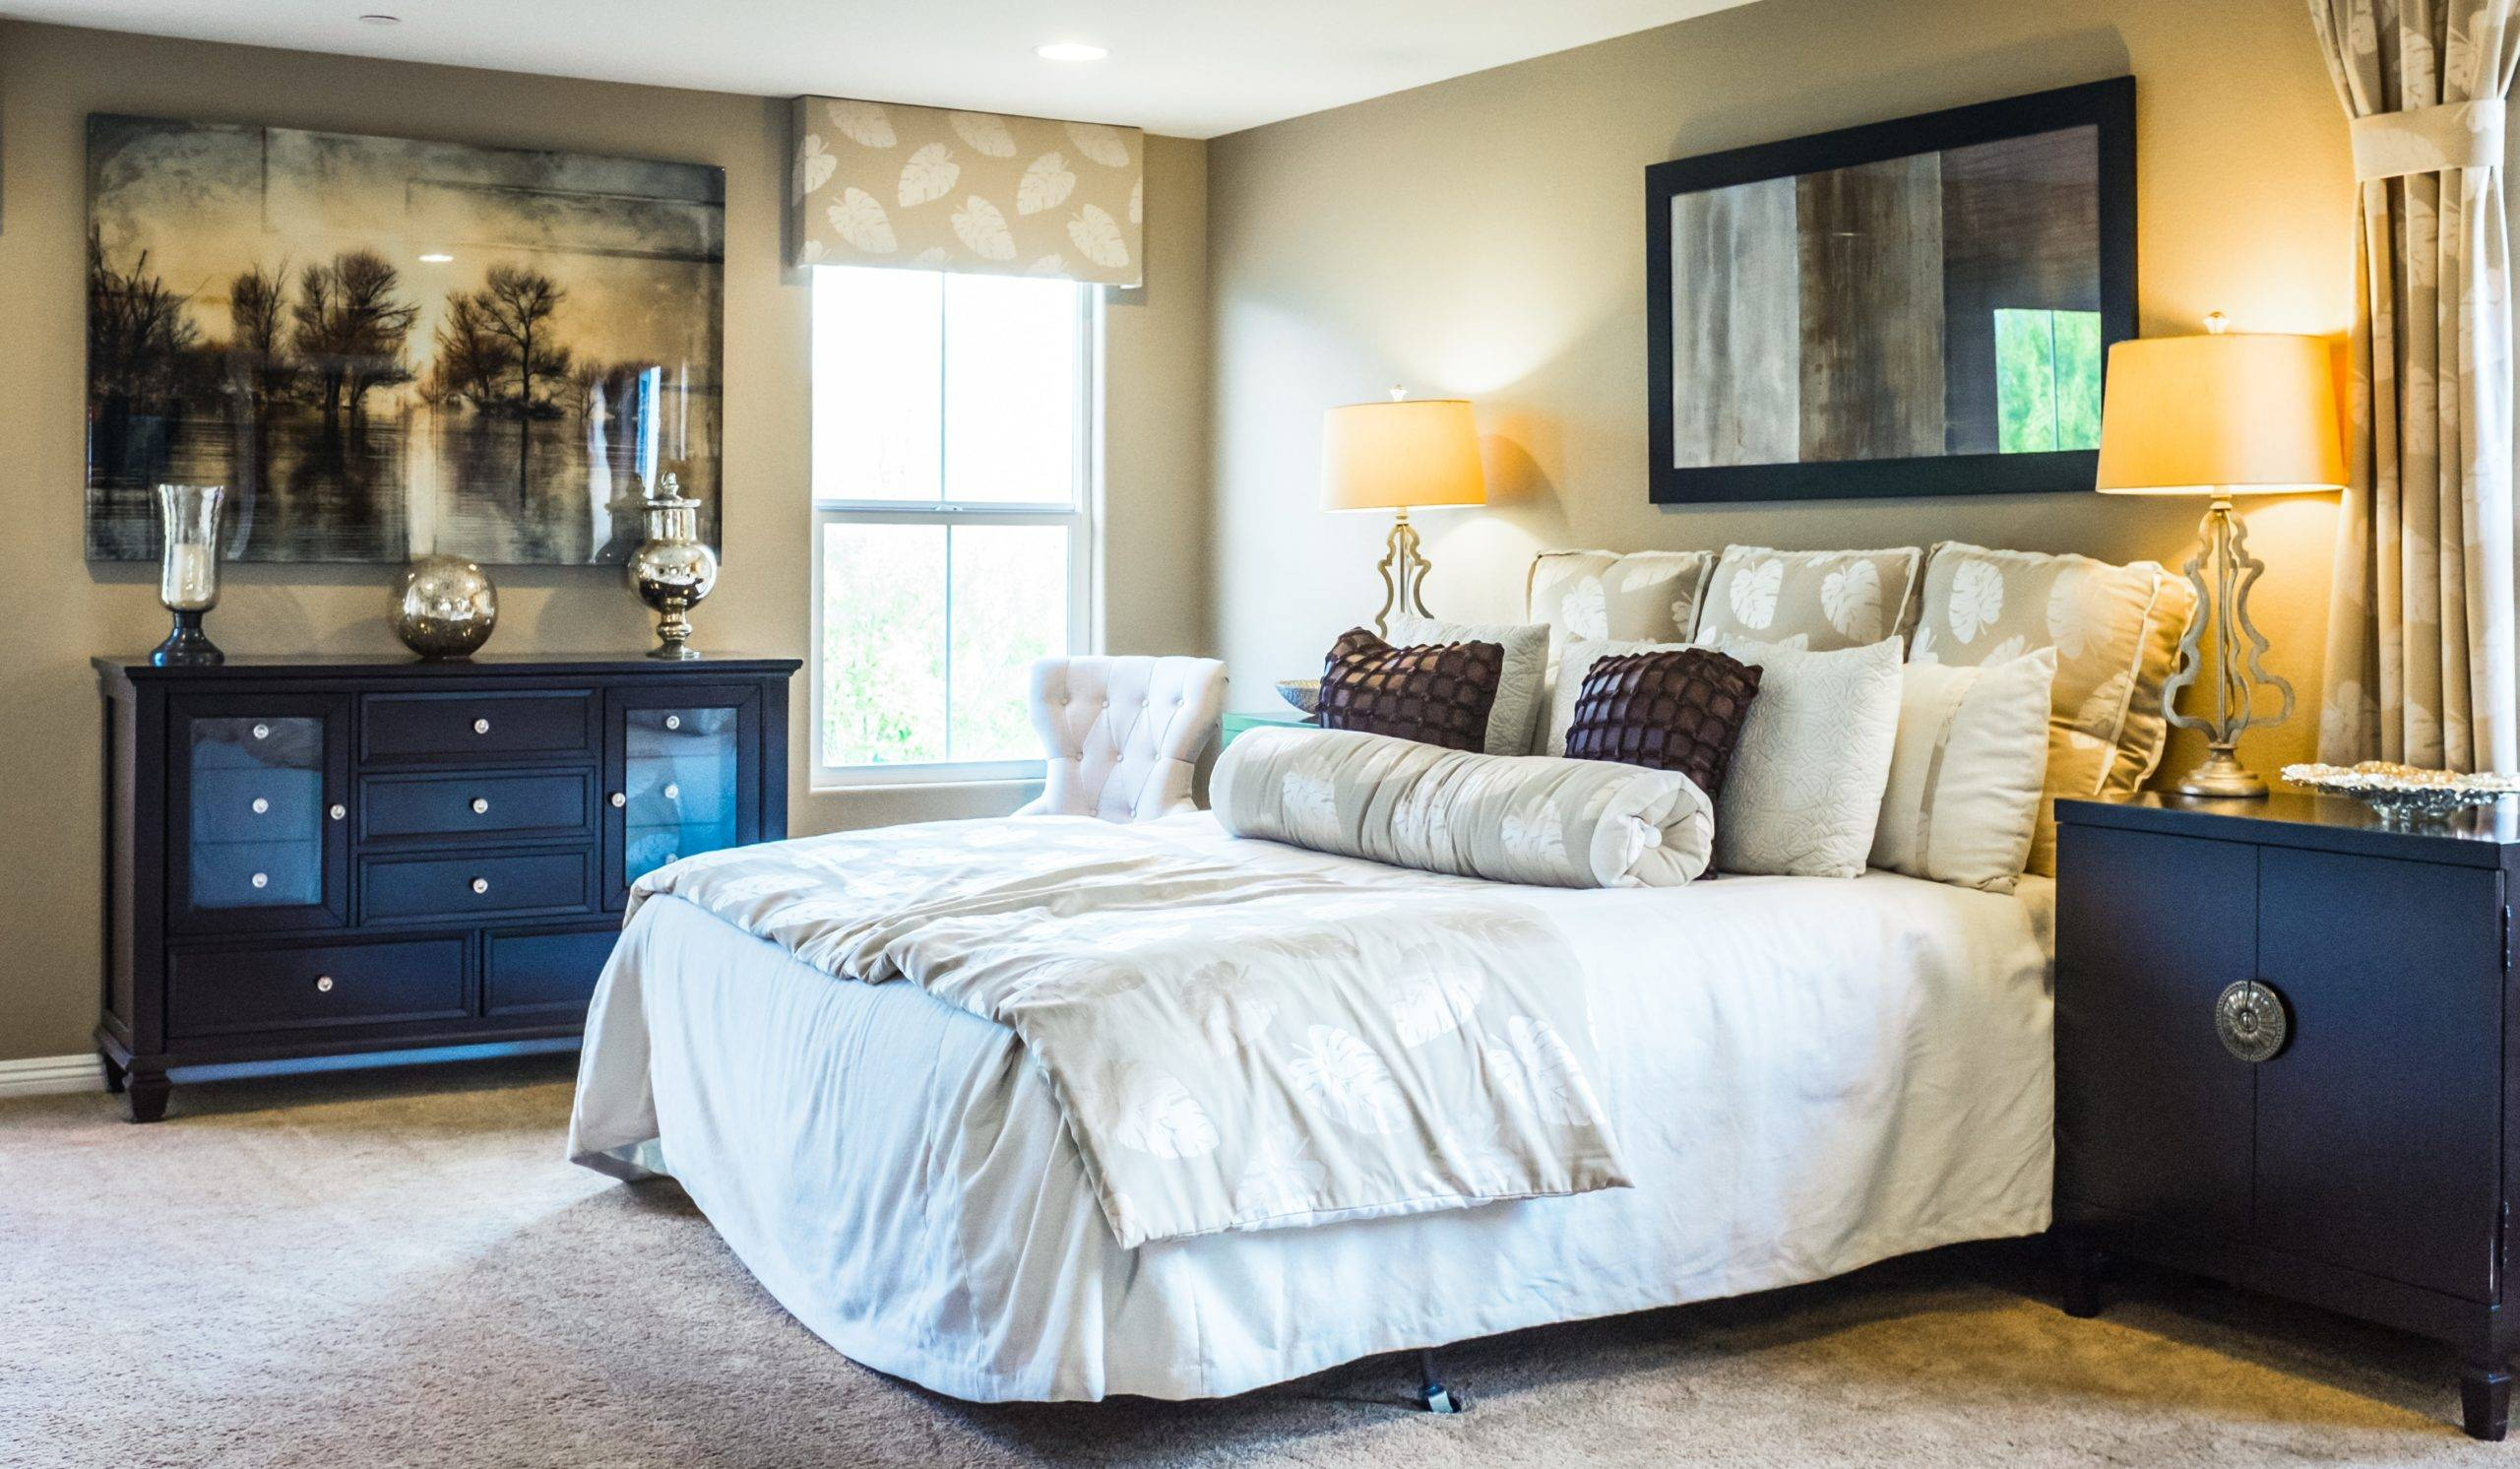 Blue drawers and side table in room with queen-size bed